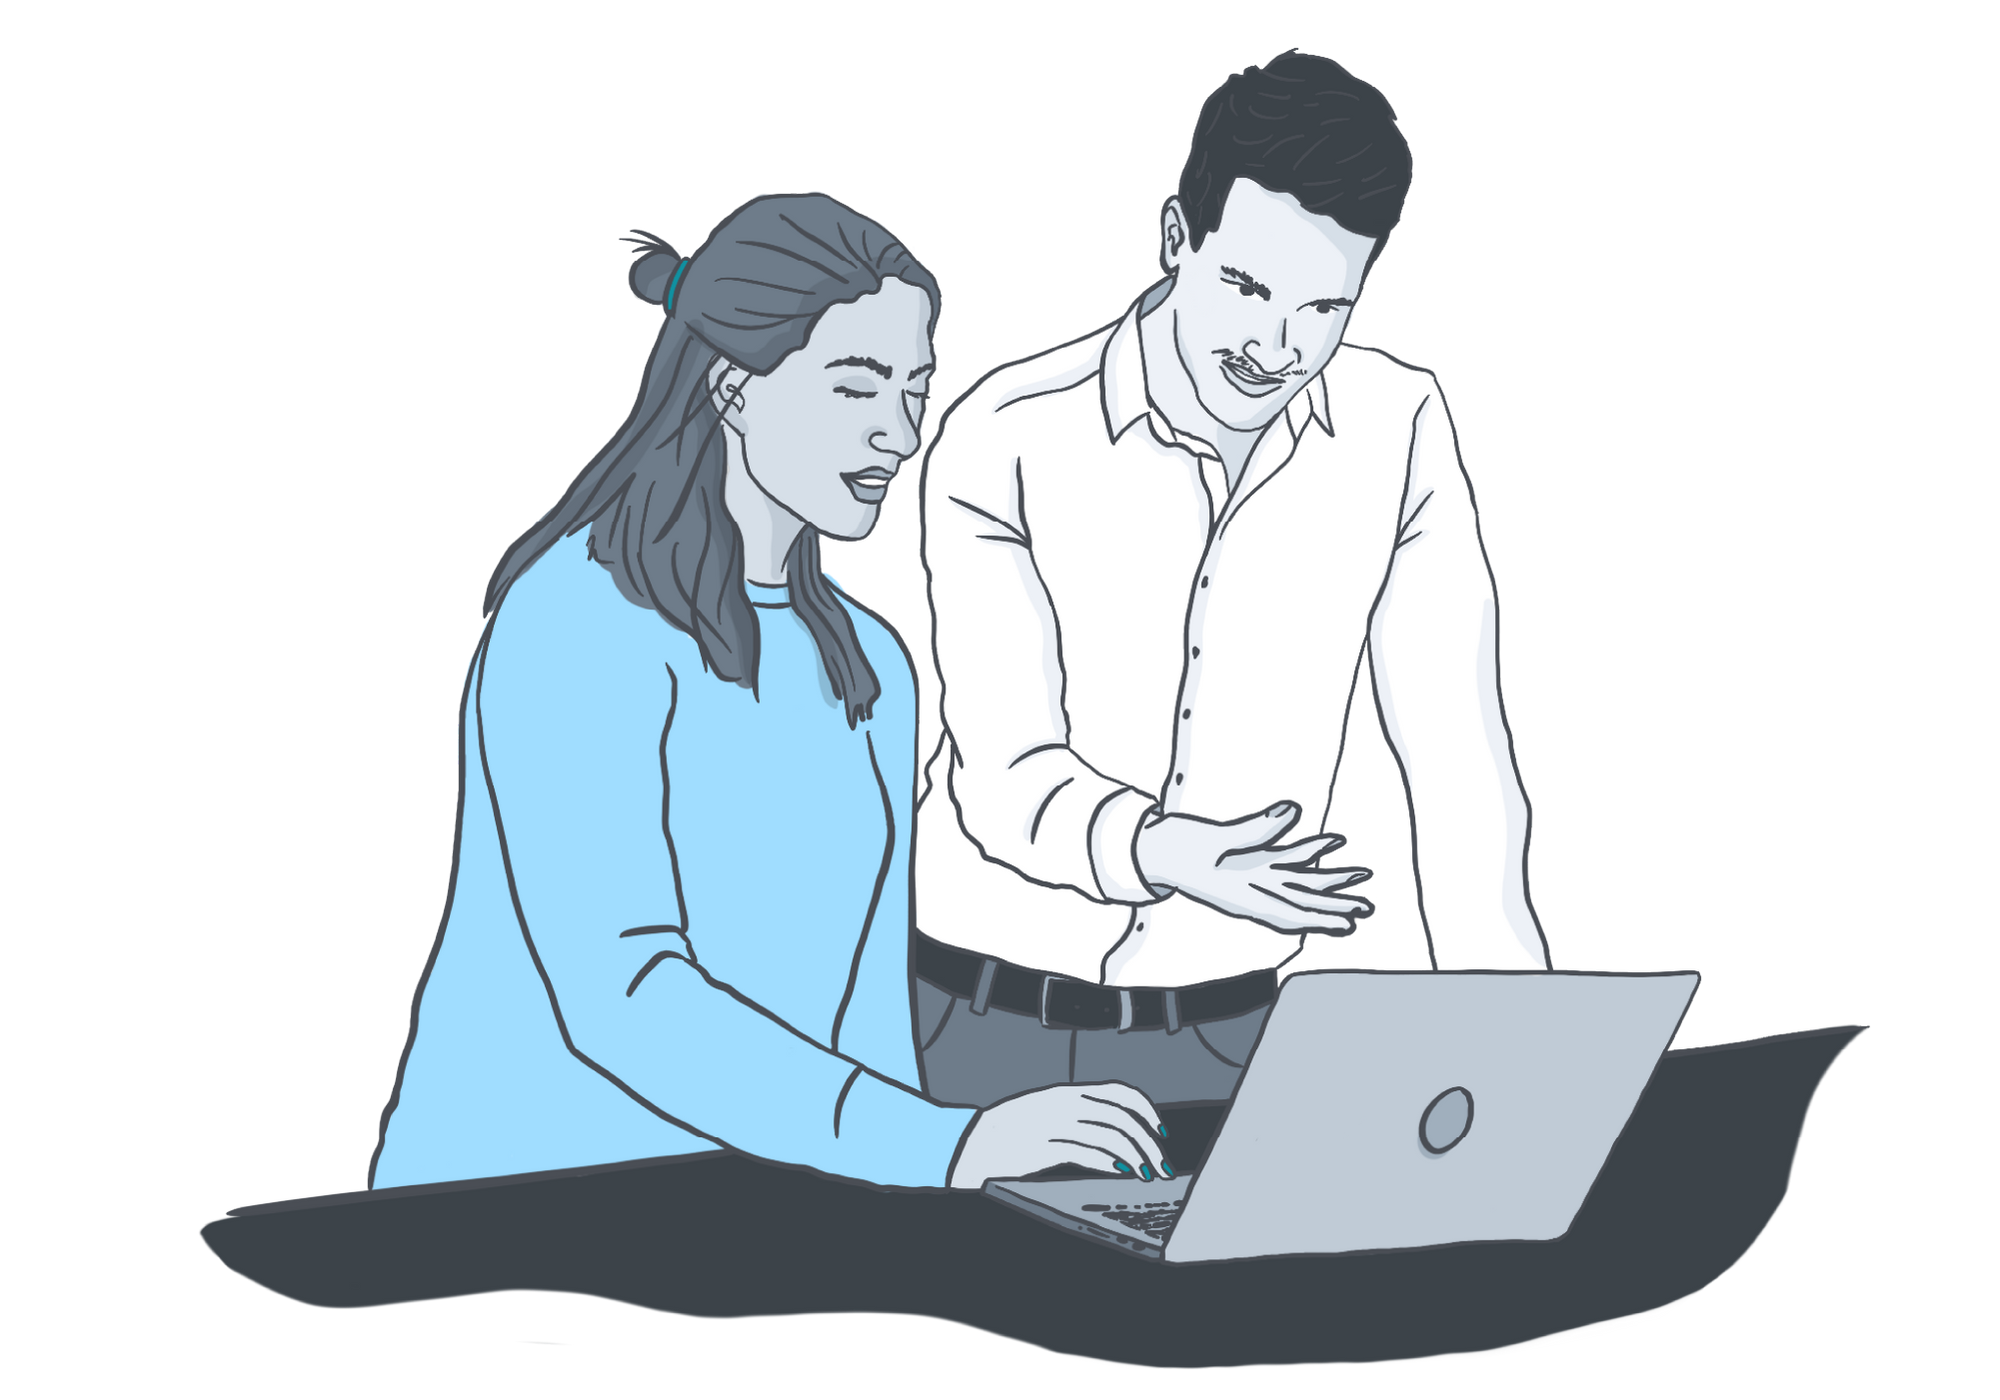 Two People Collaborating